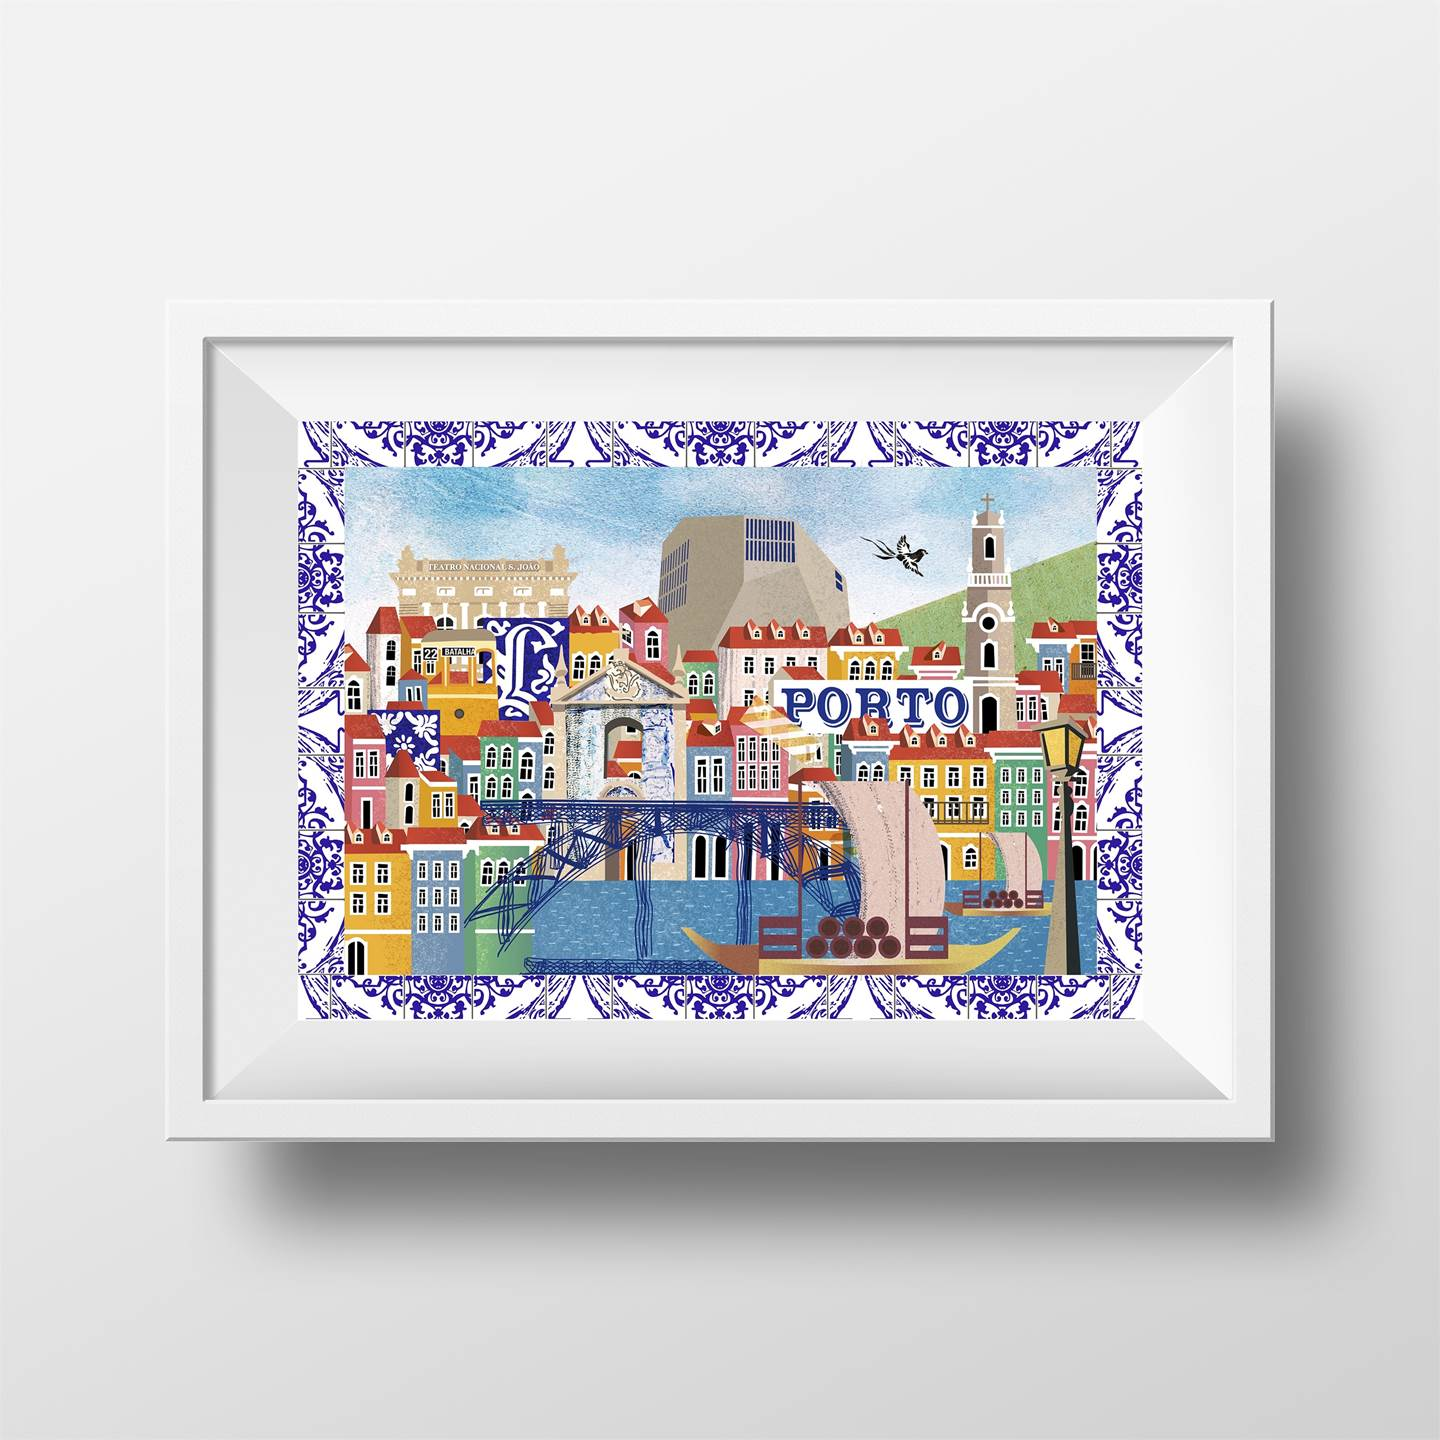 Porto, original Landscape Collage Drawing and Illustration by Maria João Faustino